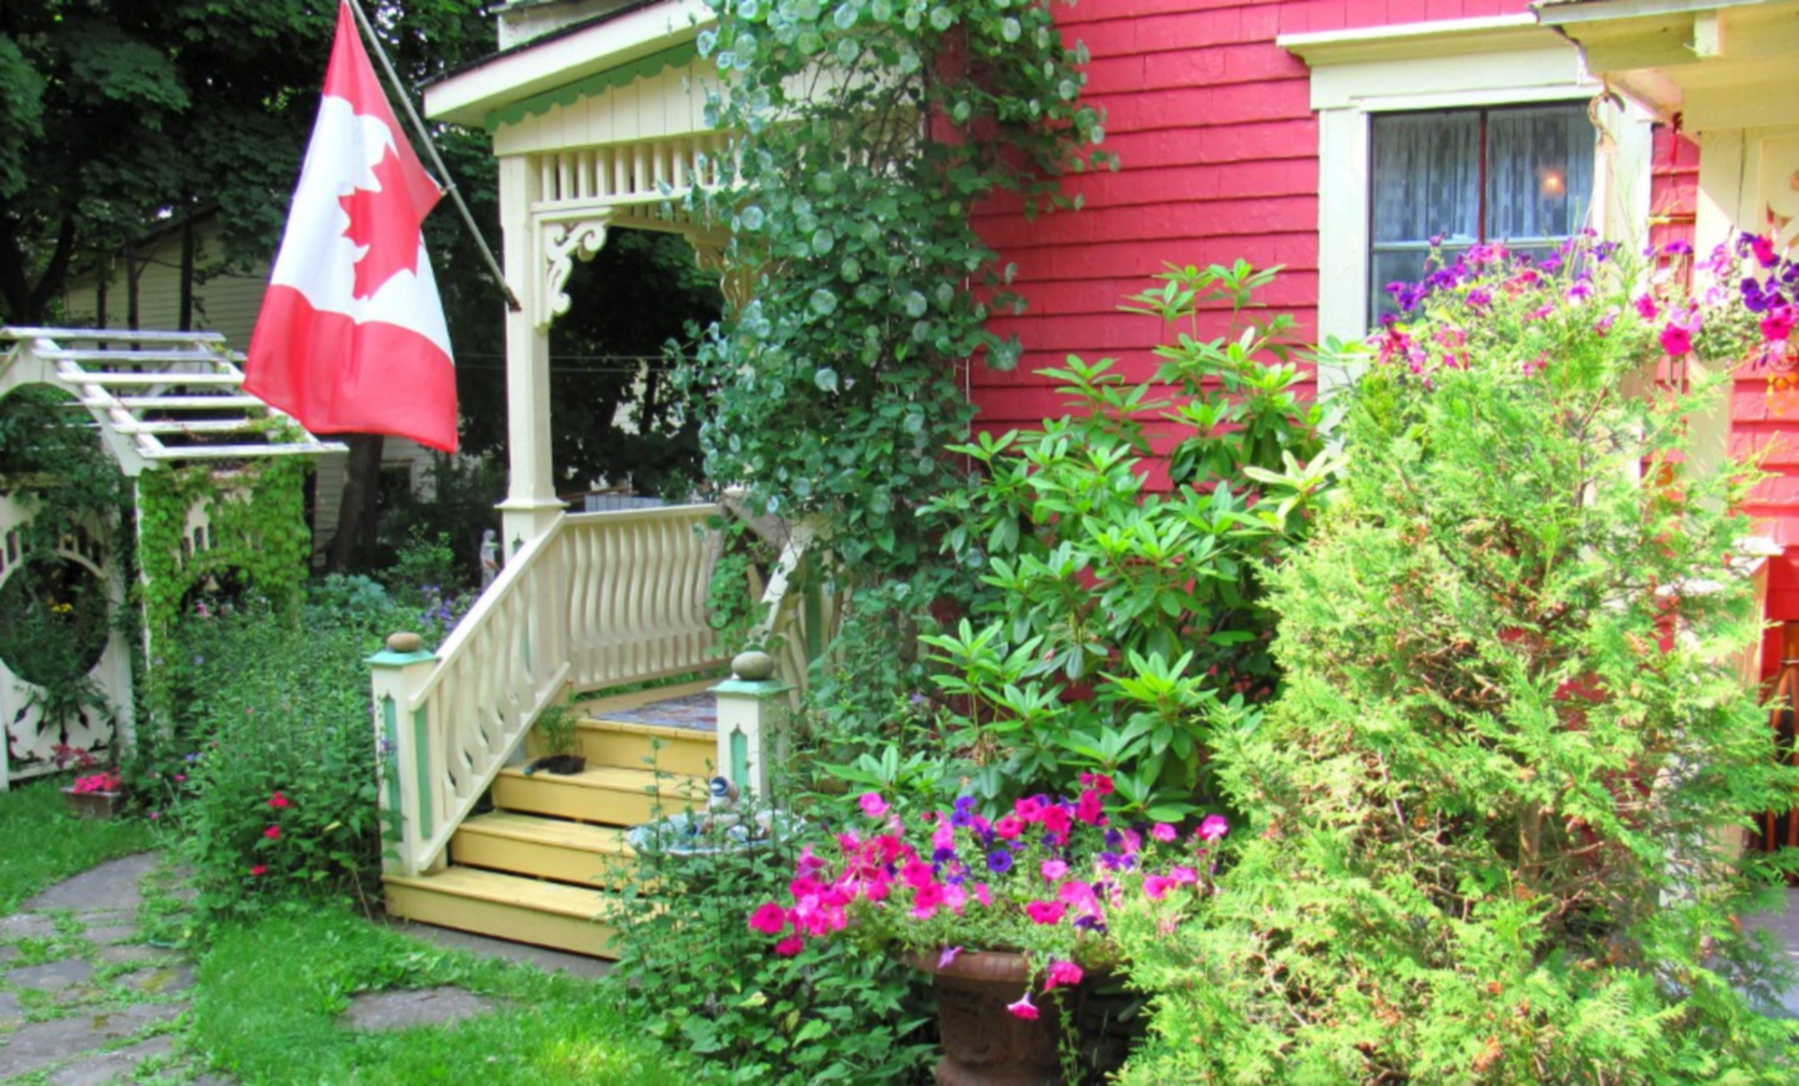 A colorful flower garden in front of a house at Chambers Guest House.